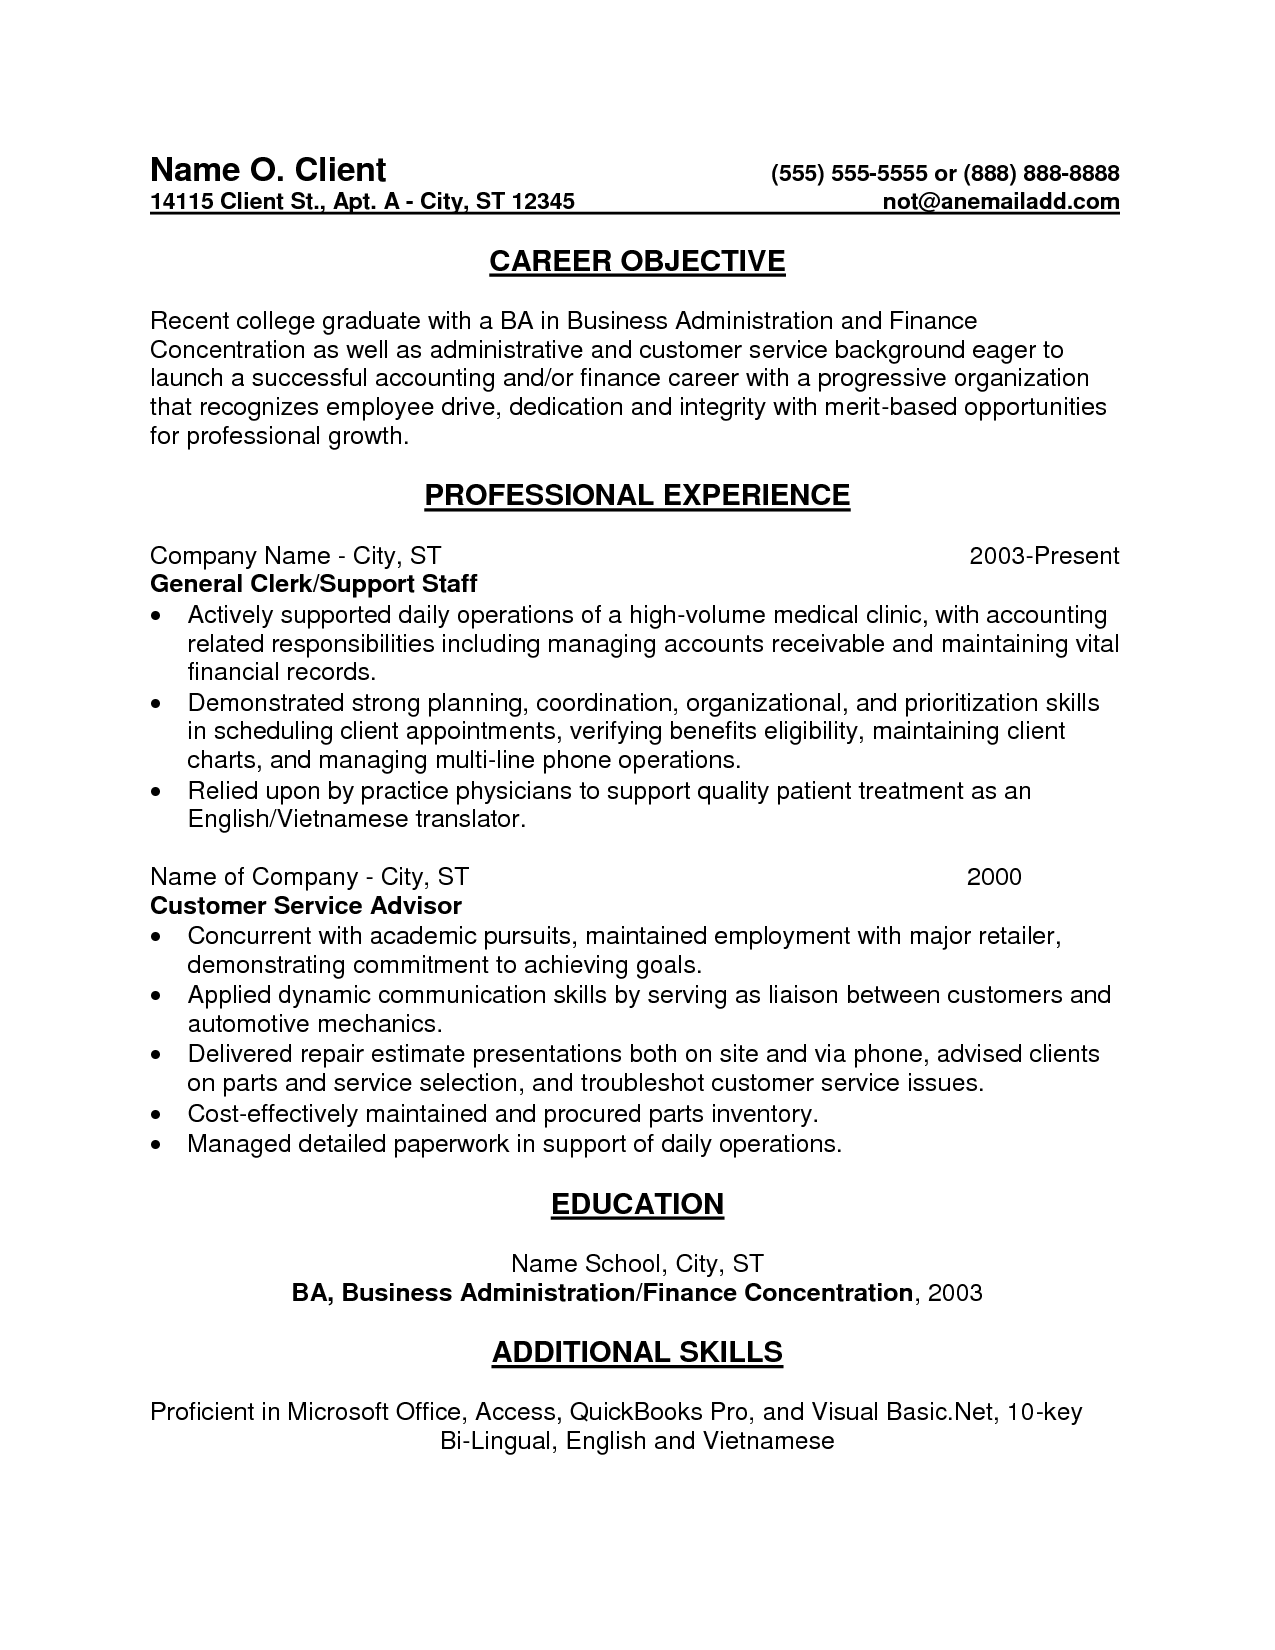 Resume Template Examples Biodata Sample Format For Inside Resume For Recent  College Graduate Resume Design Example